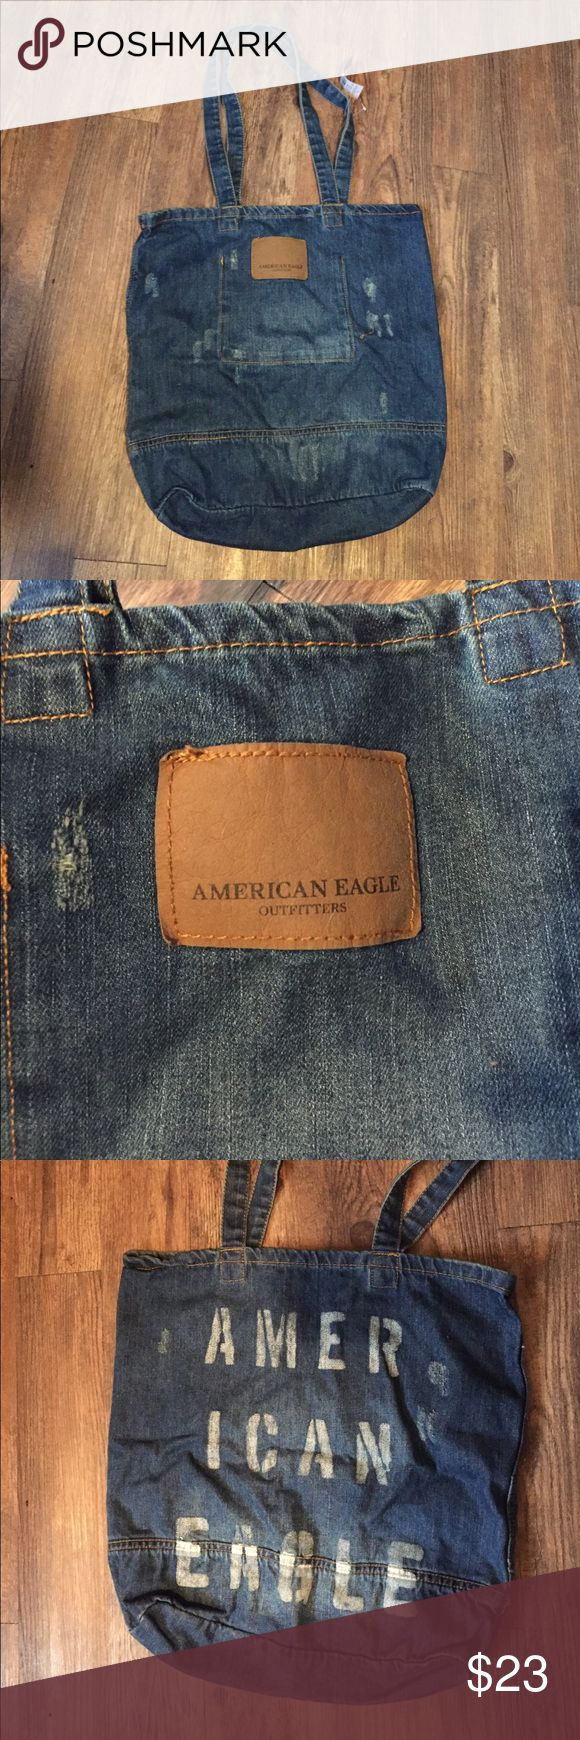 """American Eagle Denim Distressed Tote Bag Laptop New with tags American Eagle denim tote bag. Distressed with a """"leather"""" logo patch on the front and """"AMERICAN EAGLE"""" printed on the back. This bag features a pocket on the inside. Perfect for a laptop, school, or a casual purse! American Eagle Outfitters Bags Totes"""